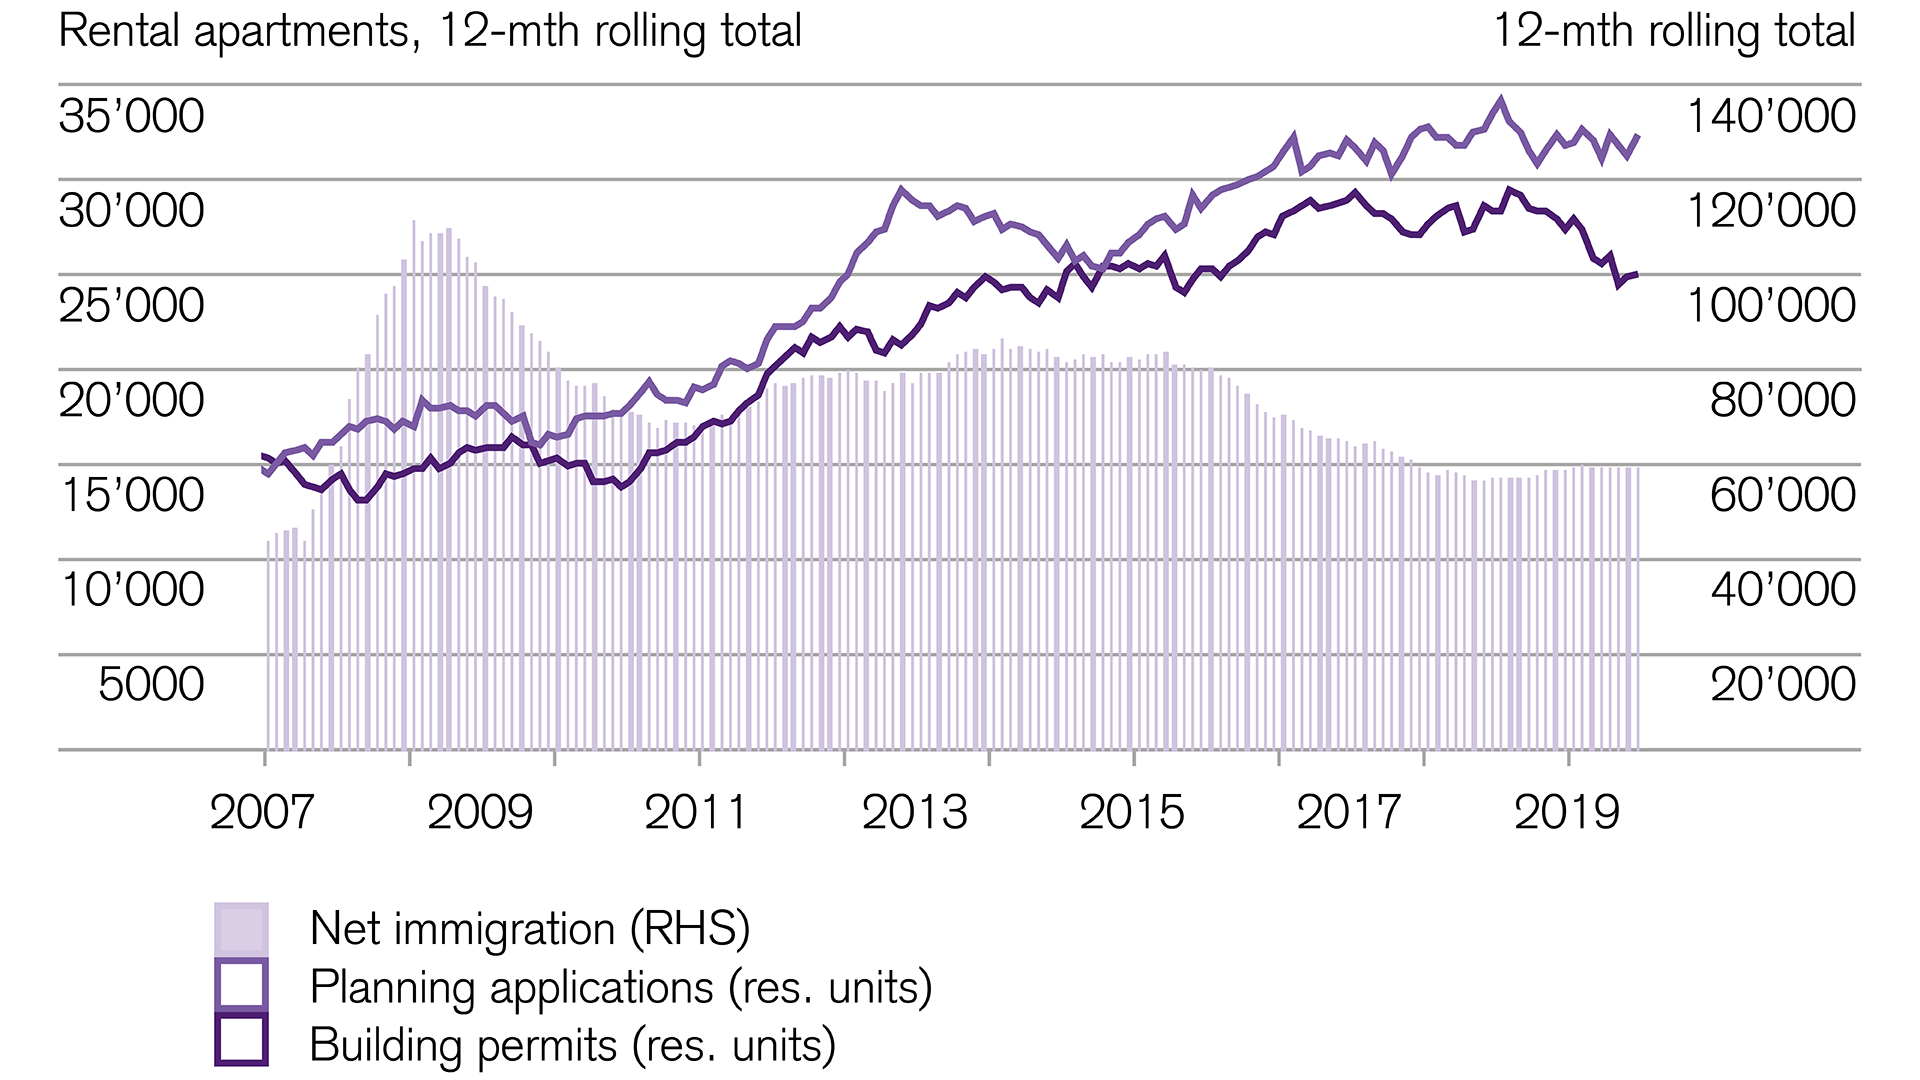 construction-activity-and-net-immigration-in-switzerland